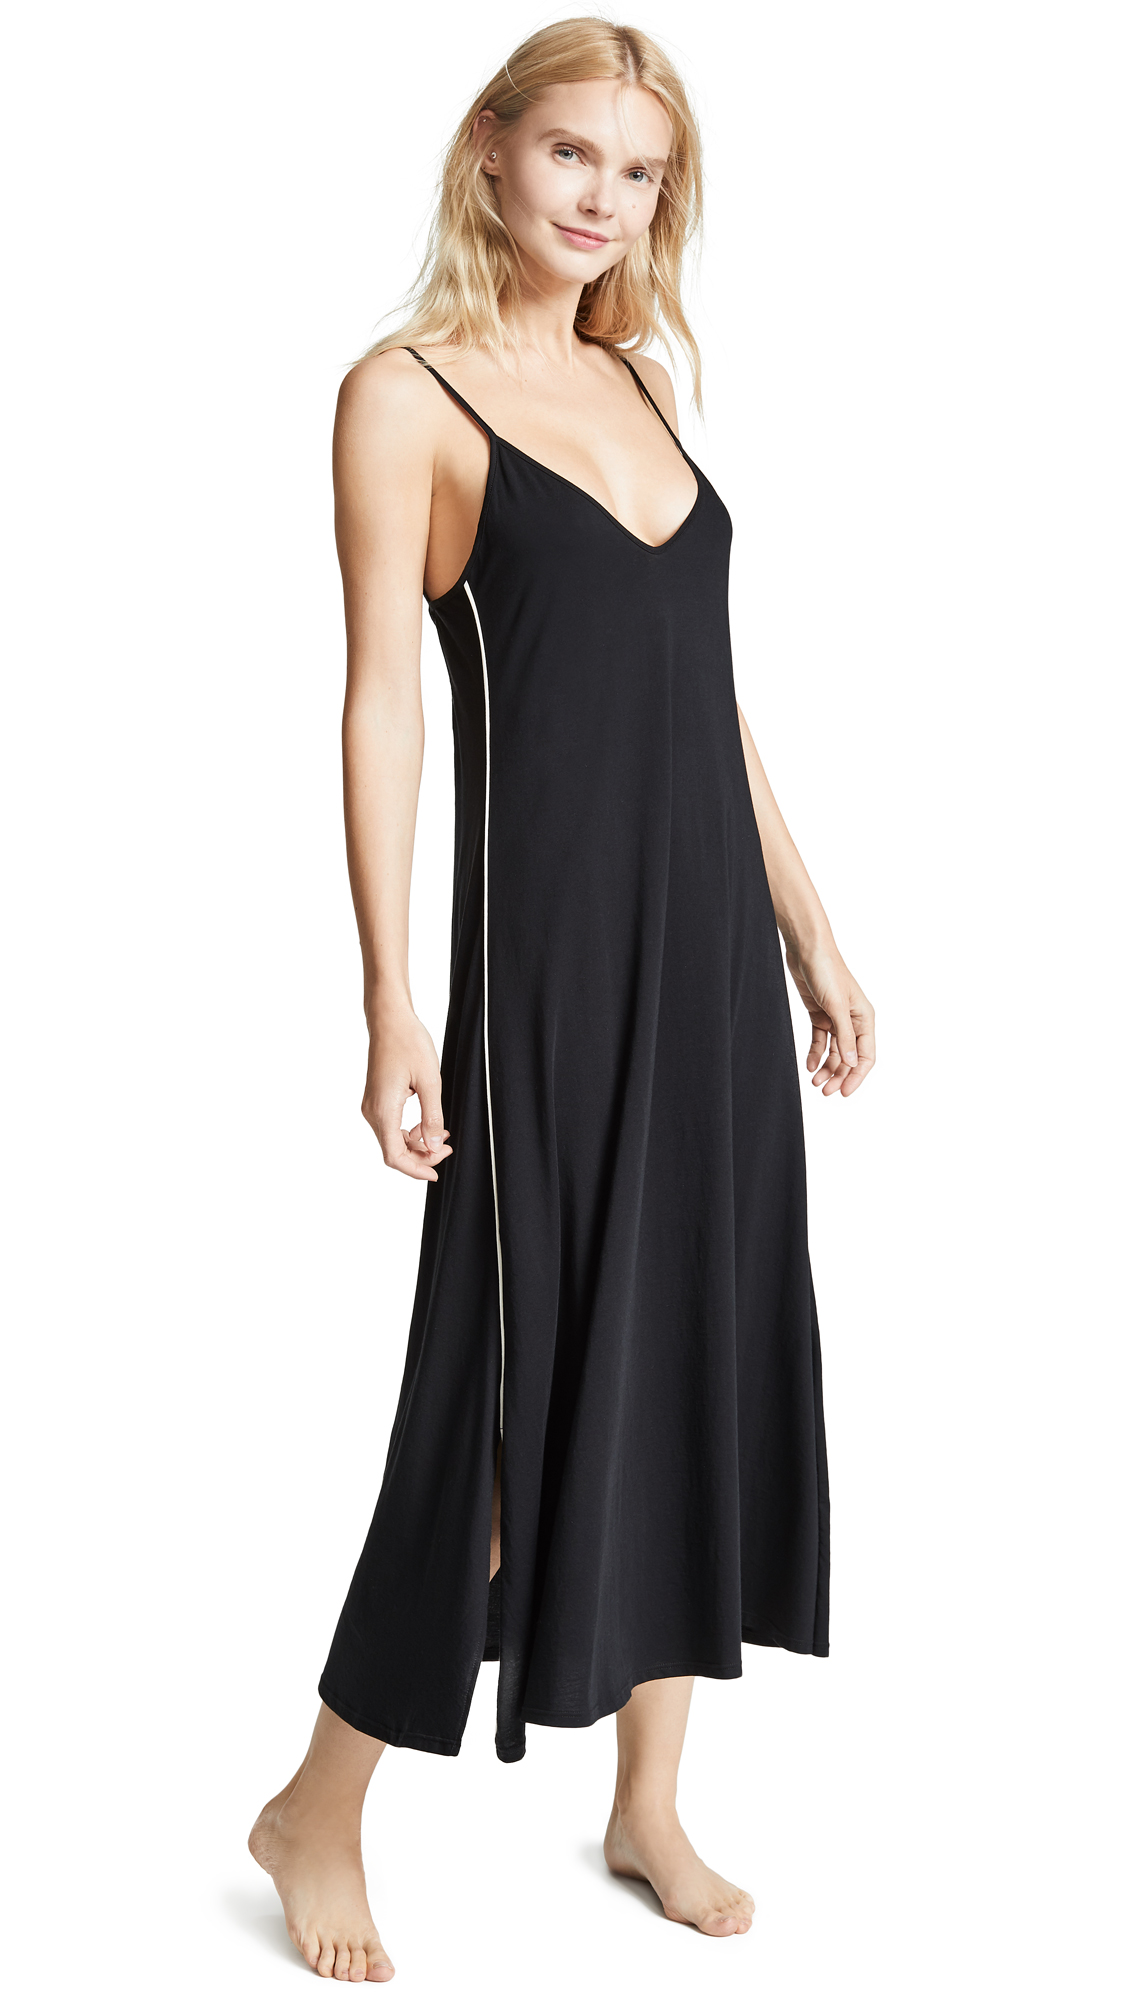 Skin Odella Slip In Black